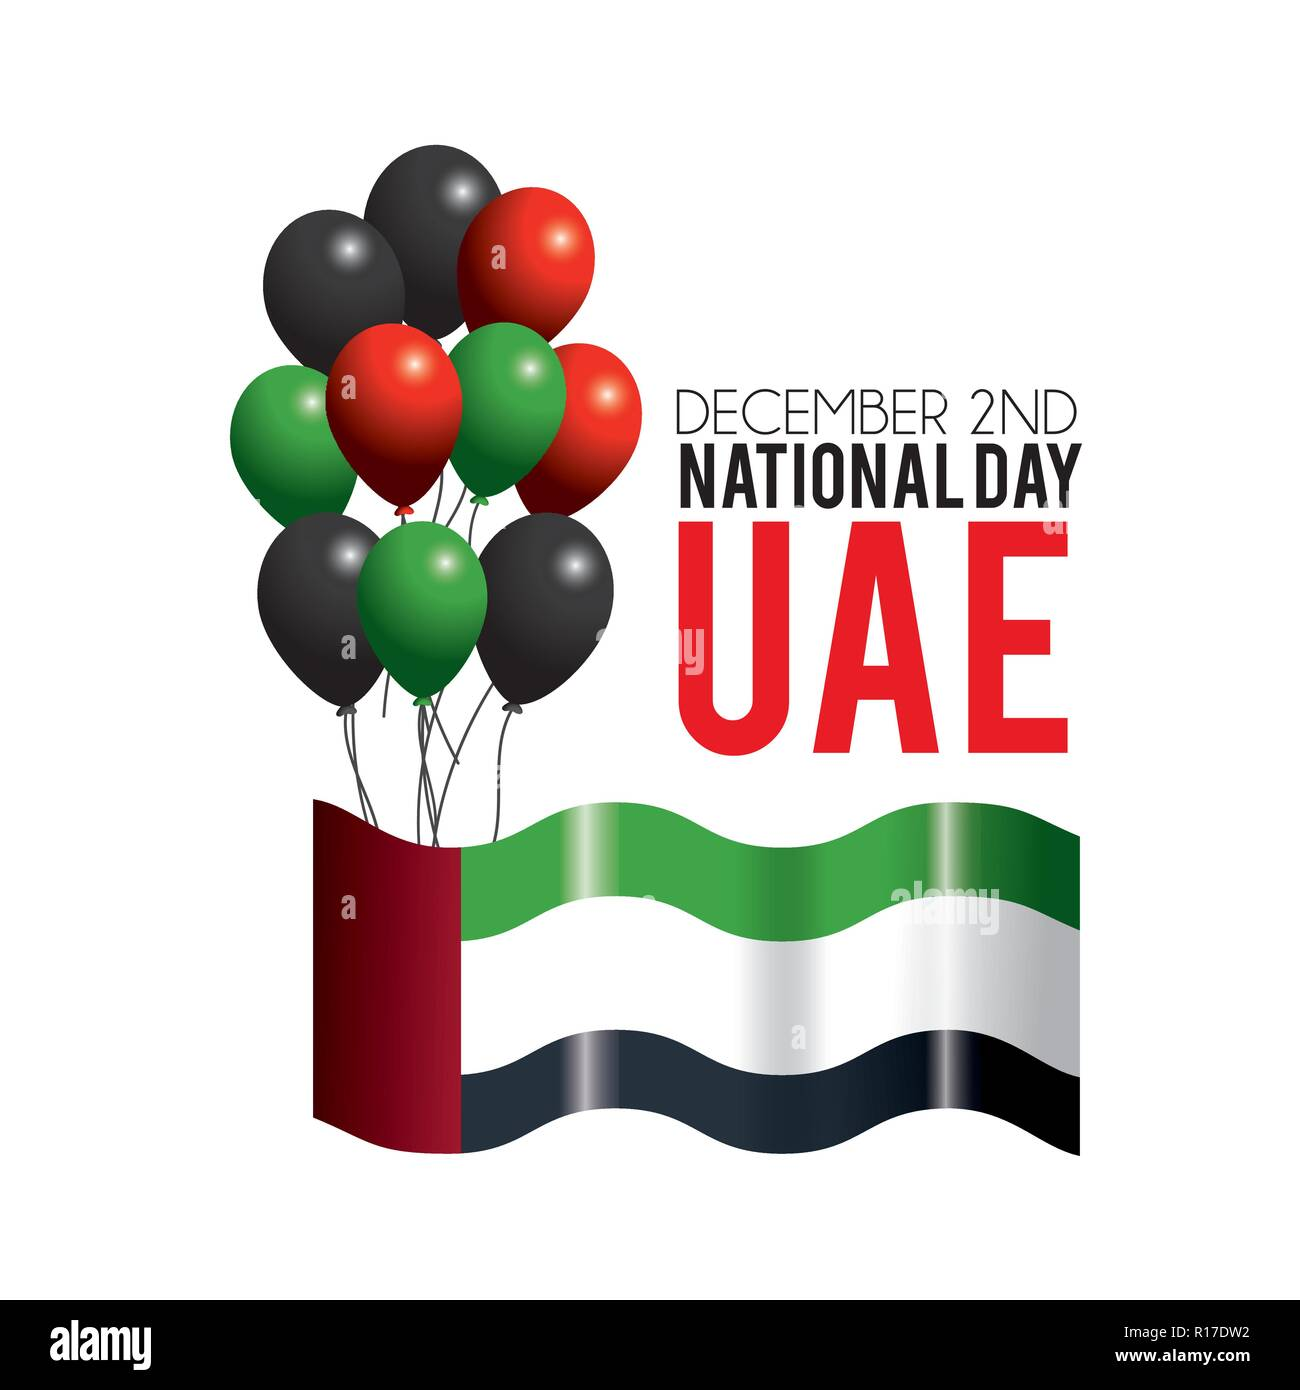 uae flag with balloons to celebrate patriotic day - Stock Image